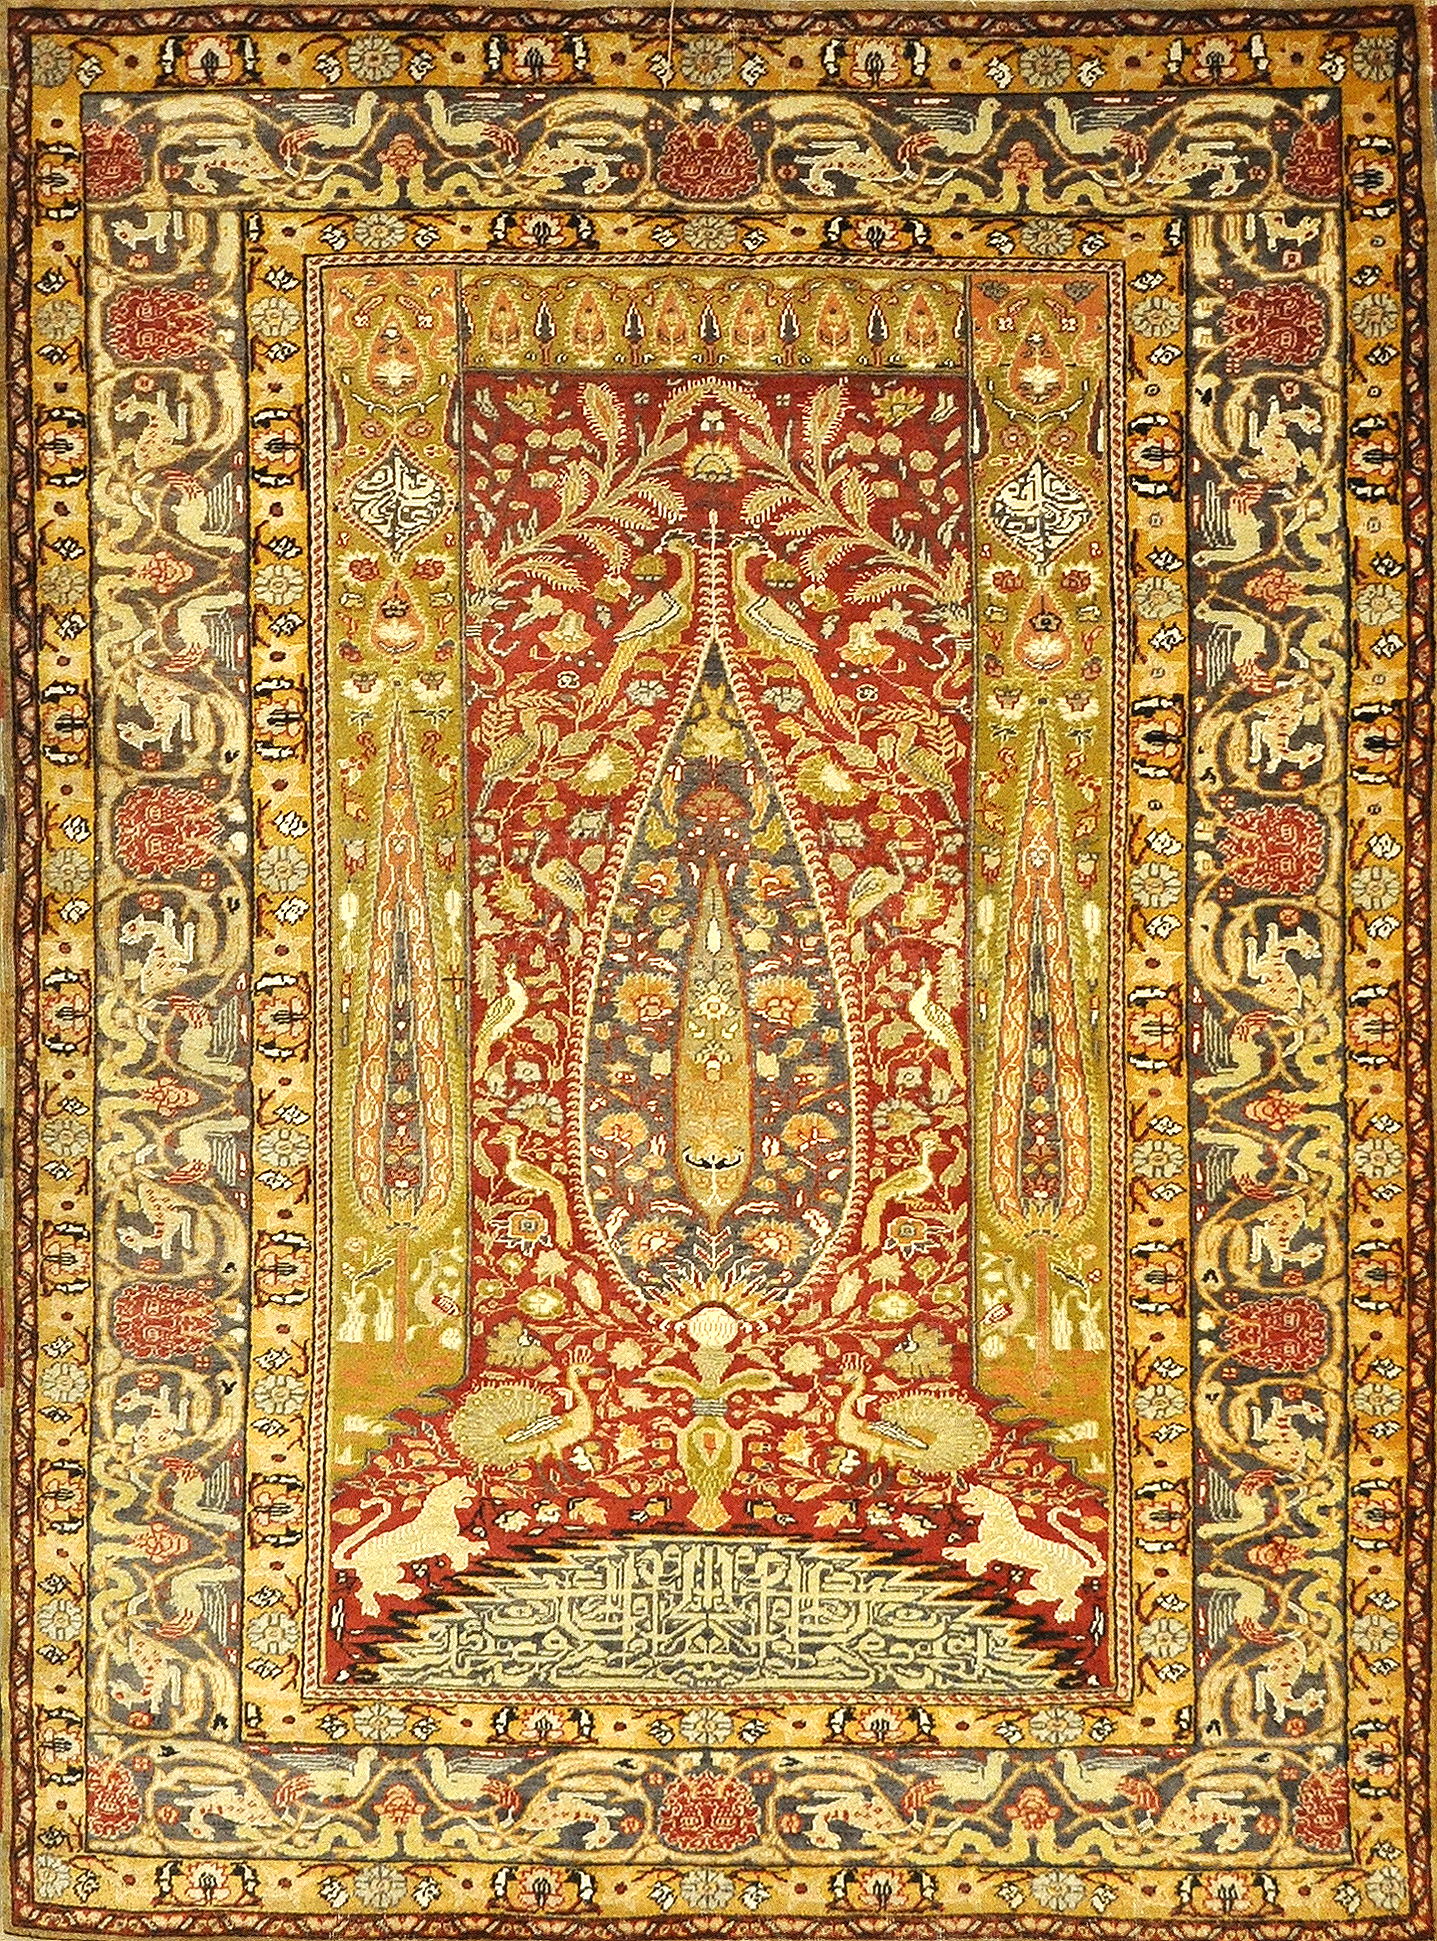 Fine Antique Kayseri Enscribed Tree of Life with Mythical Animals. A piece of authentic woven carpet art sold by Santa Barbara Design Center, Rugs and More.